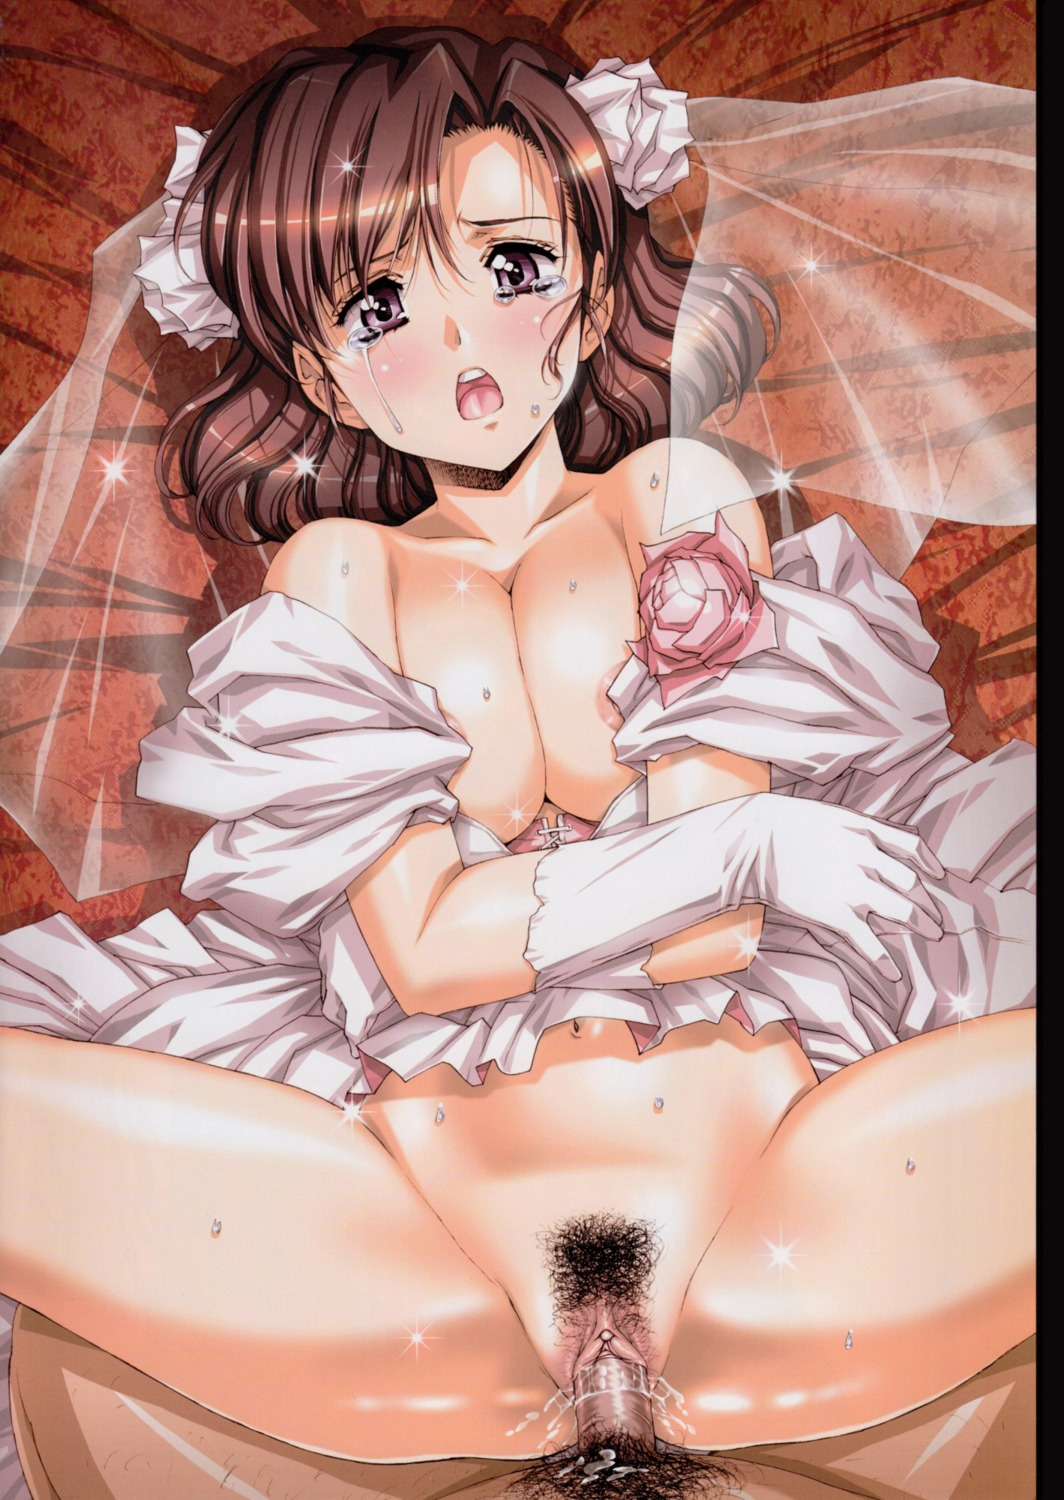 areola cleavage dress jpeg_artifacts nopan penis pubic_hair pussy pussy_juice sex uncensored urushihara_satoshi wedding_dress